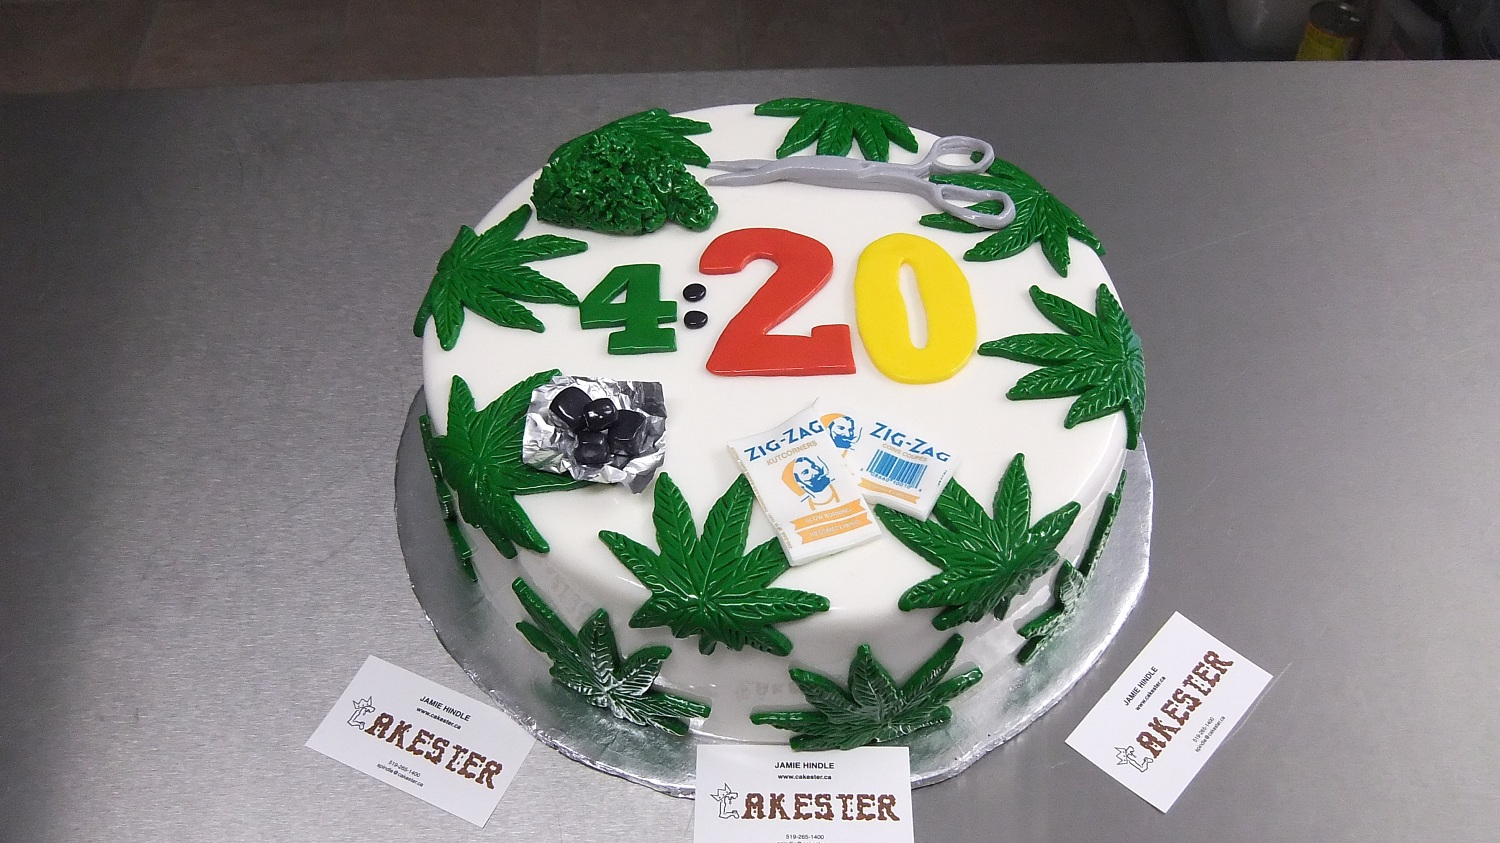 420 Birthday Welcome To Cakester Ca